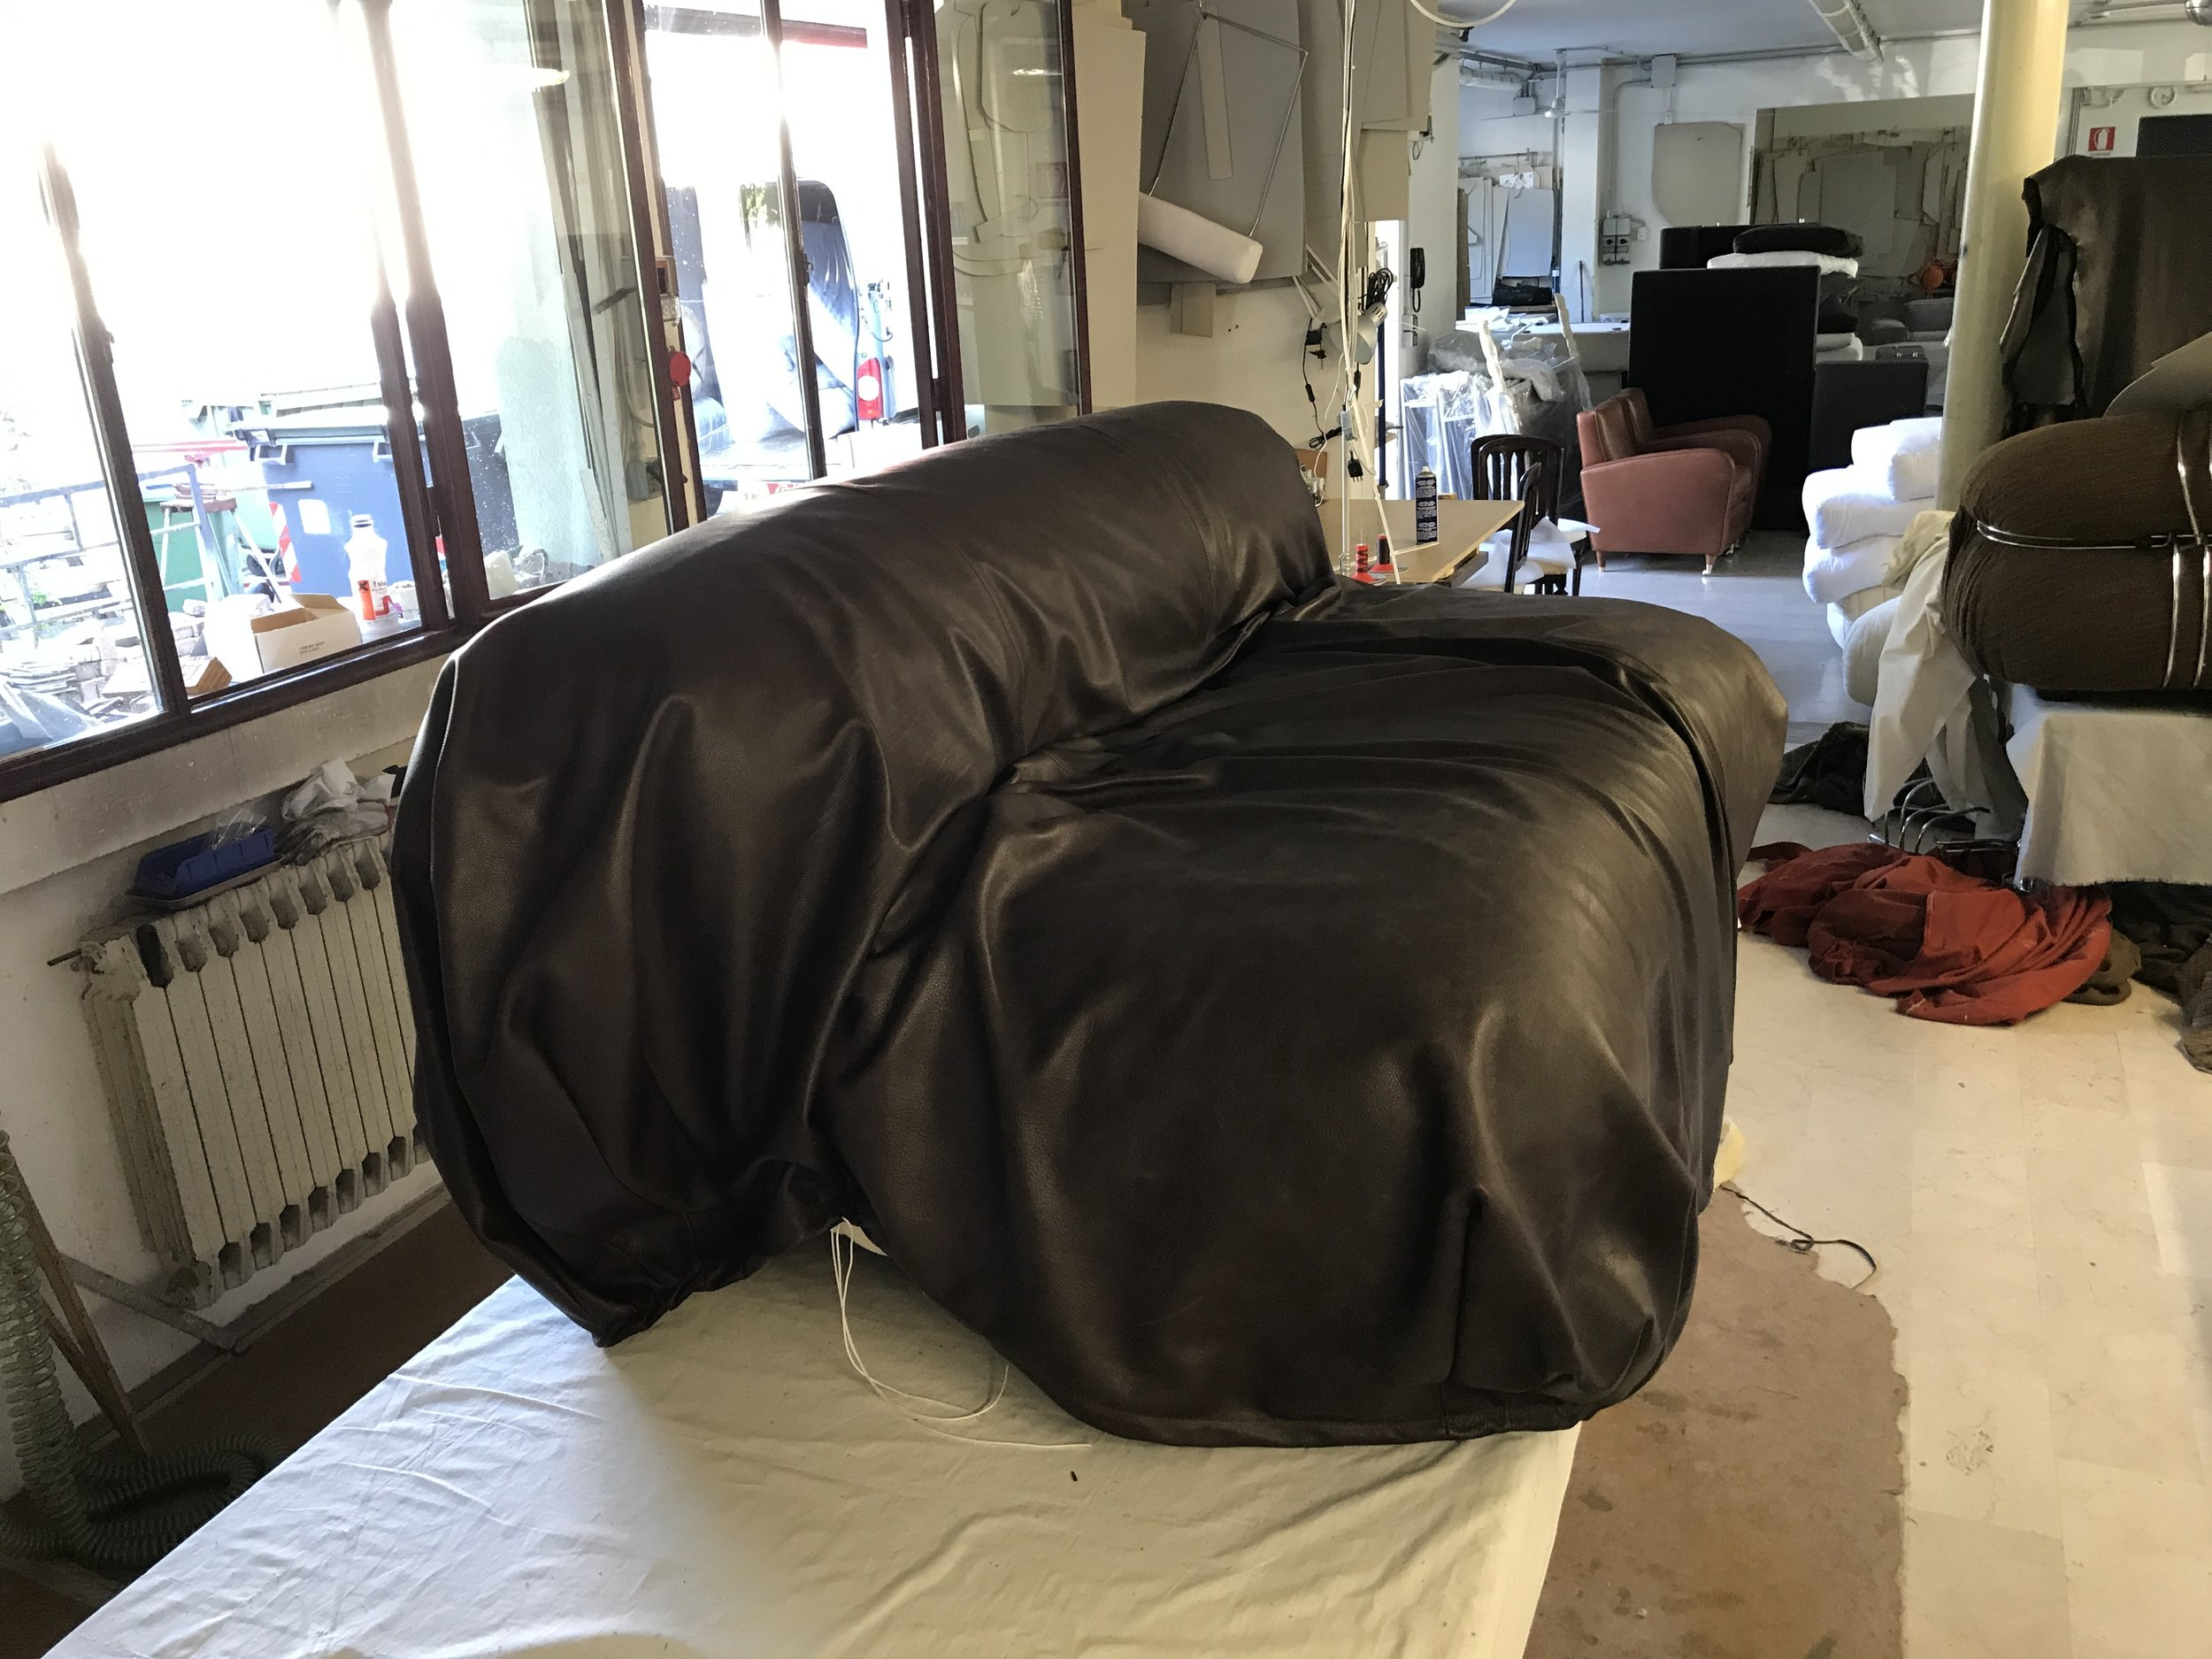 Soriana Sofa Restoration phase 4 - The Leather process a very important step!